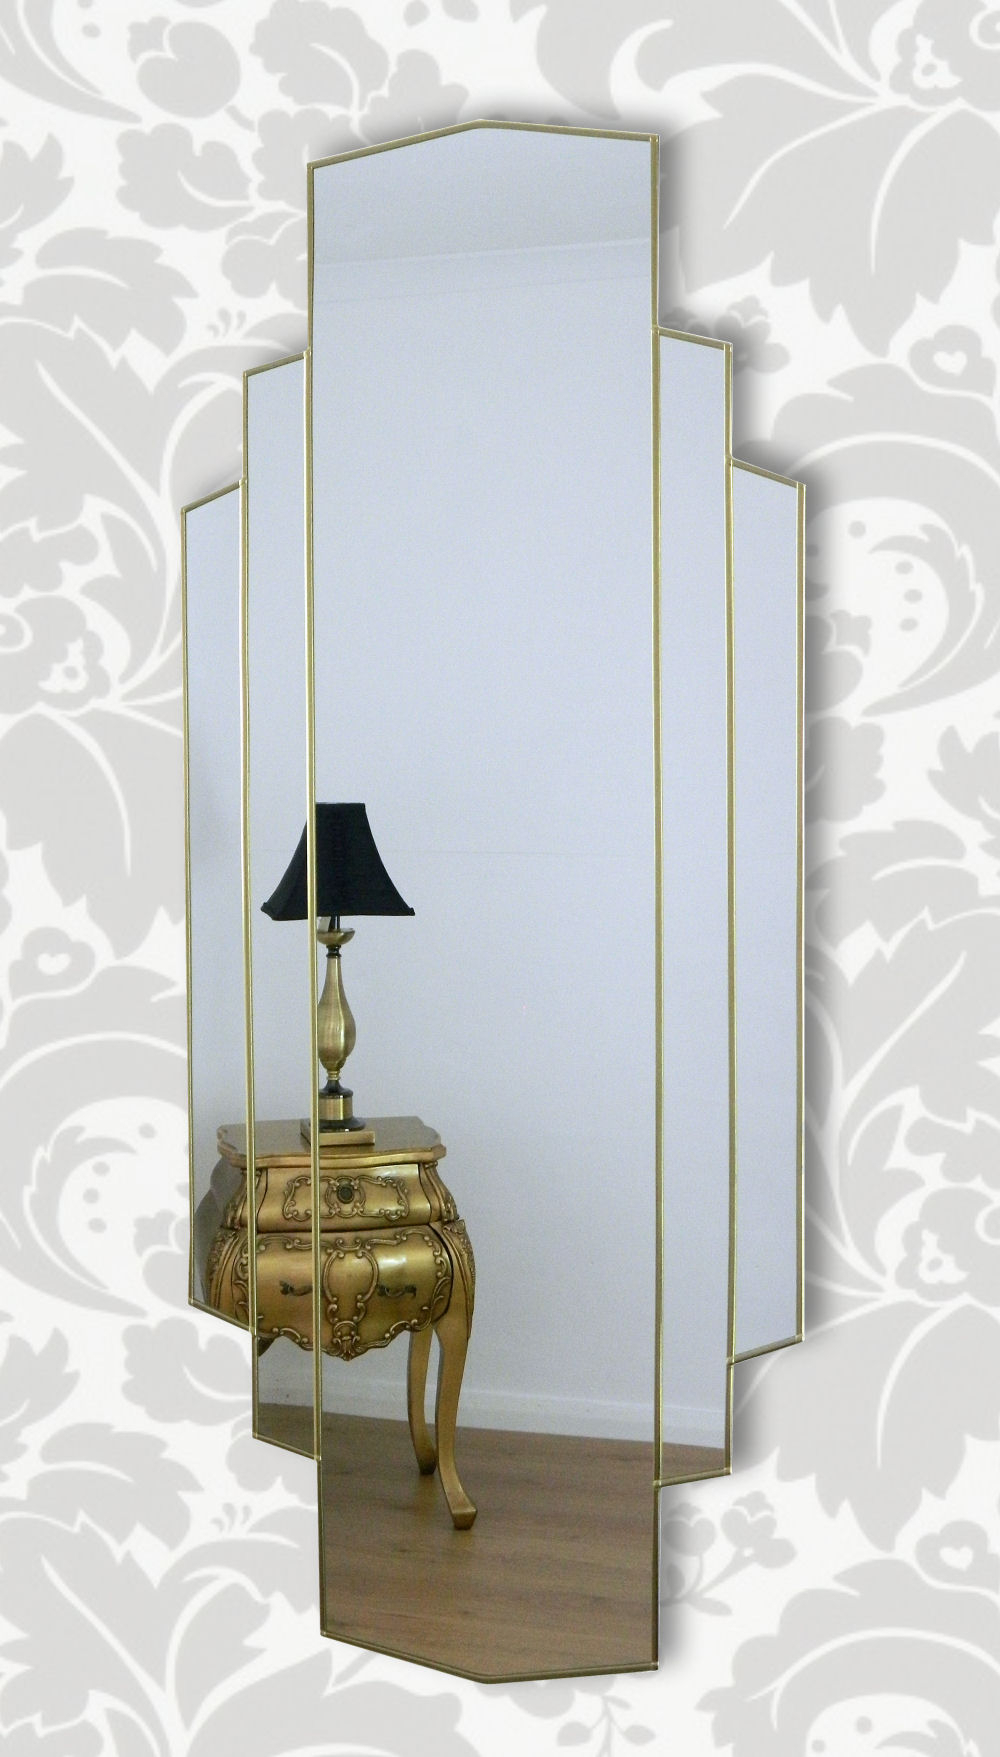 Popular Wall Mirrors Full Length Pertaining To Metro Original Handcrafted Full Length Wall Mirror In Gold (View 12 of 20)